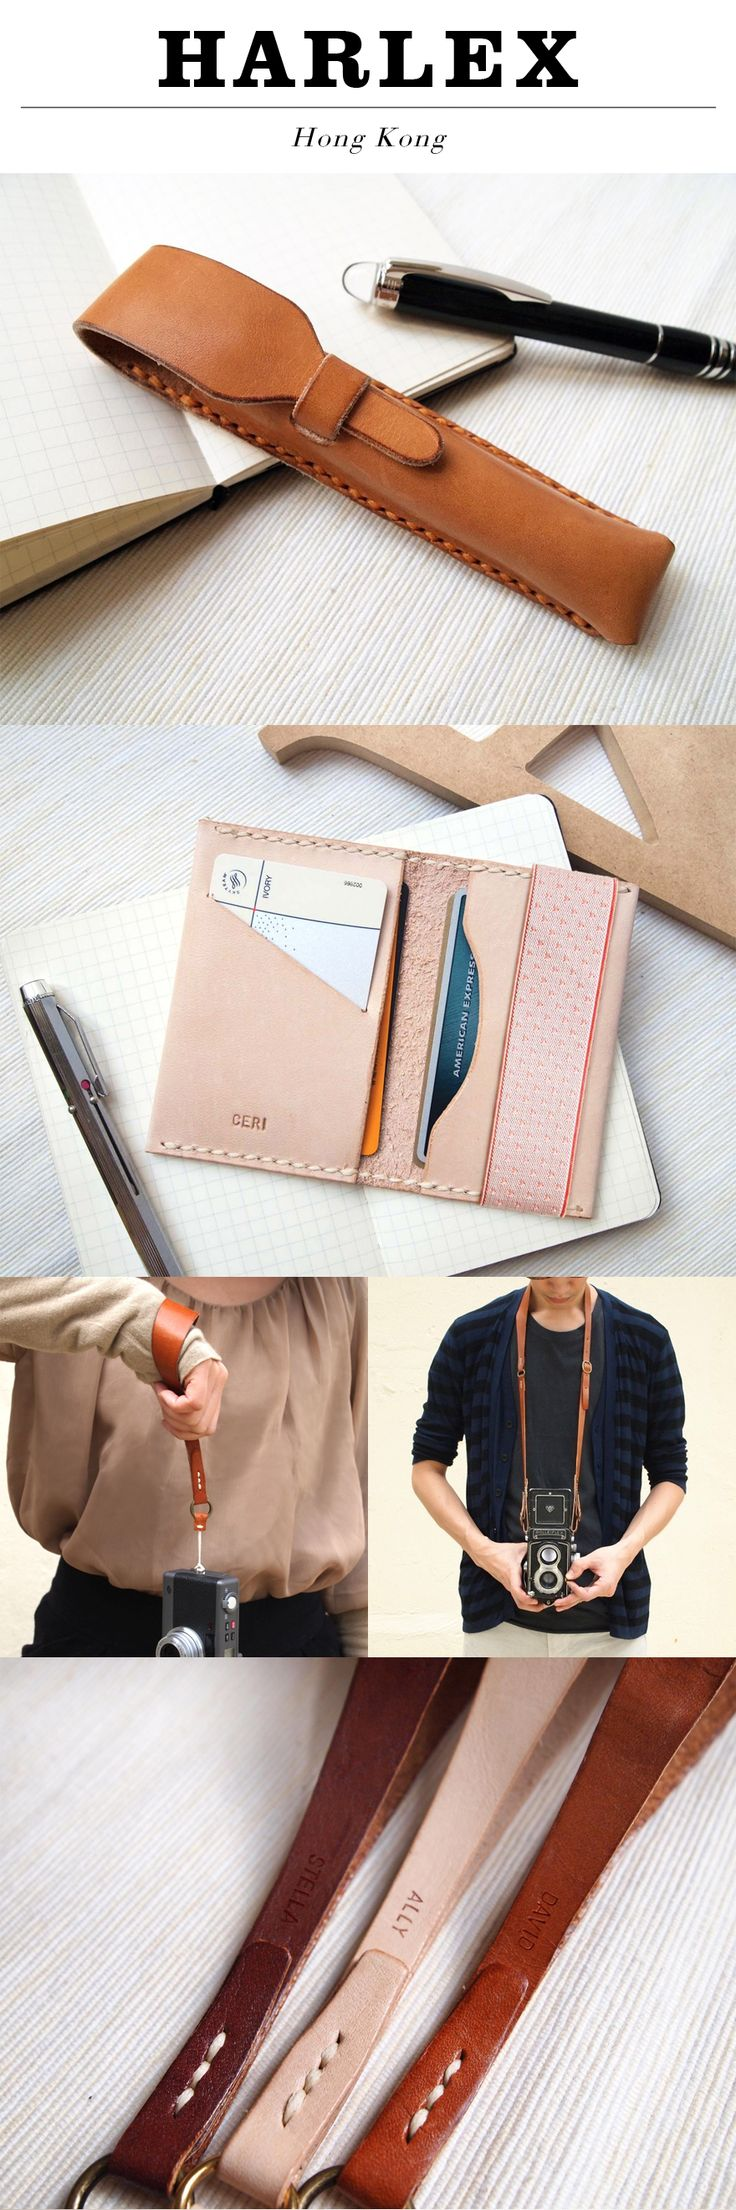 Pen cases -----  camera straps. Leather can be used to make just about anything. -Daniella